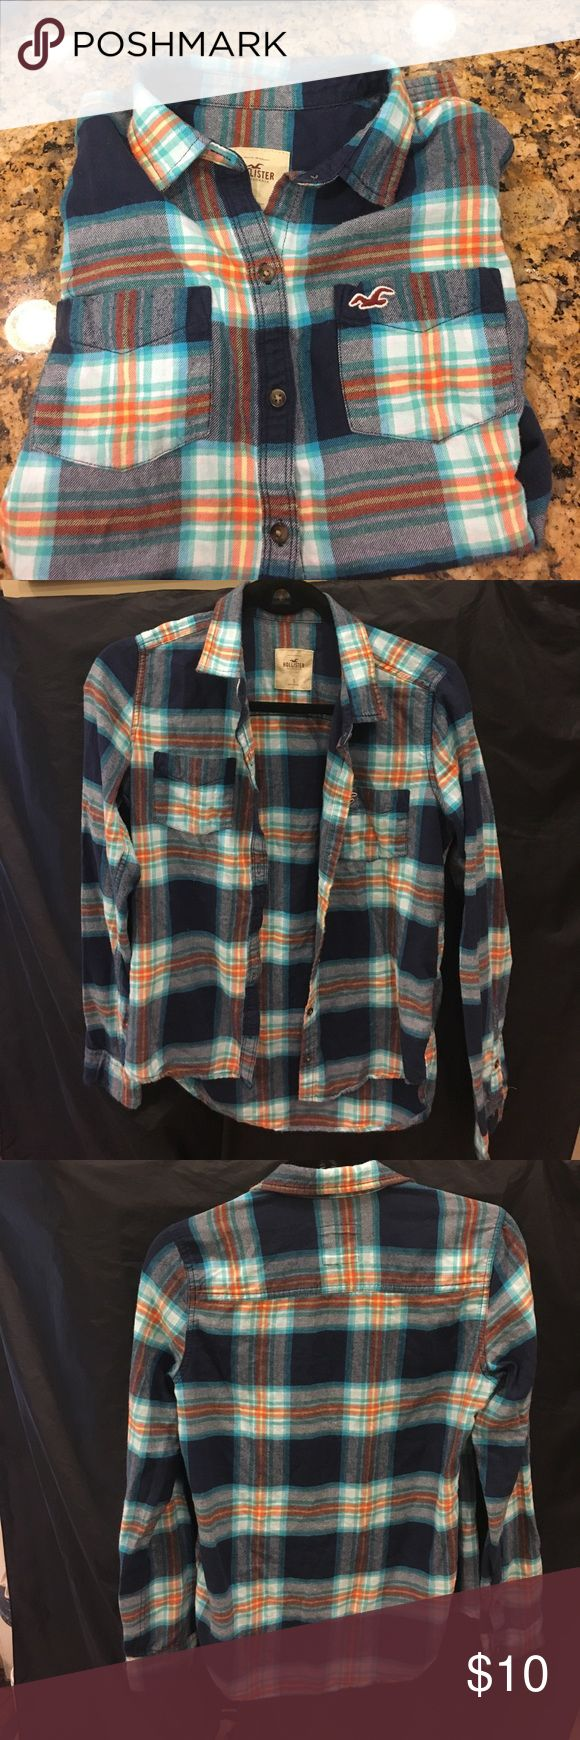 Hollister flannel Fall ready Hollister flannel! Size small has Navy blue aqua blue orange yellow green and white. Has all Original buttons. Breast pockets on both sides with embroidered Hollister logo Hollister Tops Button Down Shirts